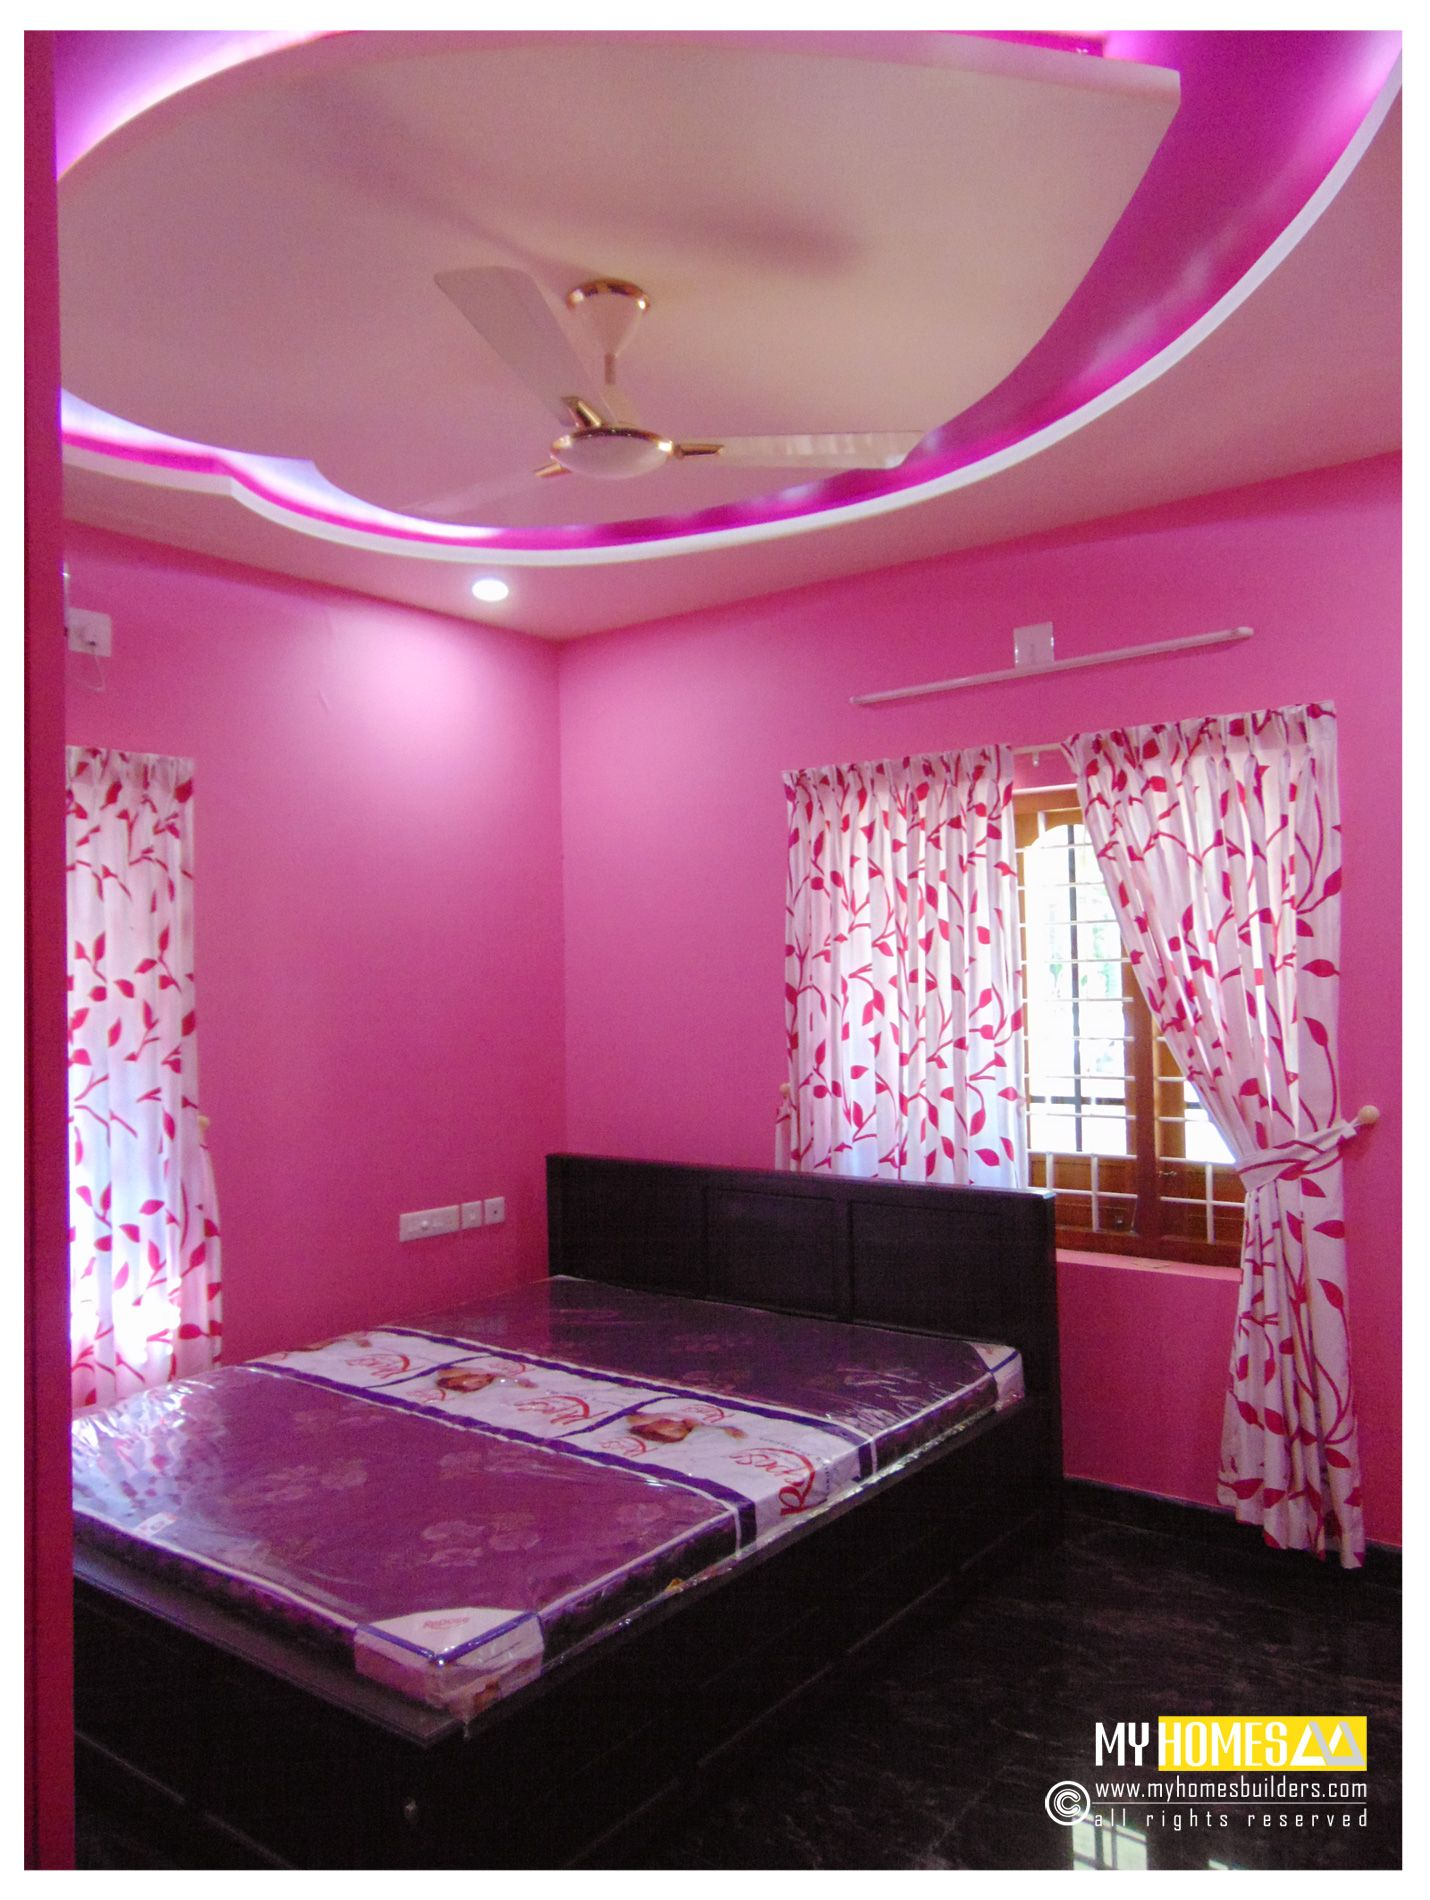 Kerala bedroom interior designs best bed room interior for New model house interior design